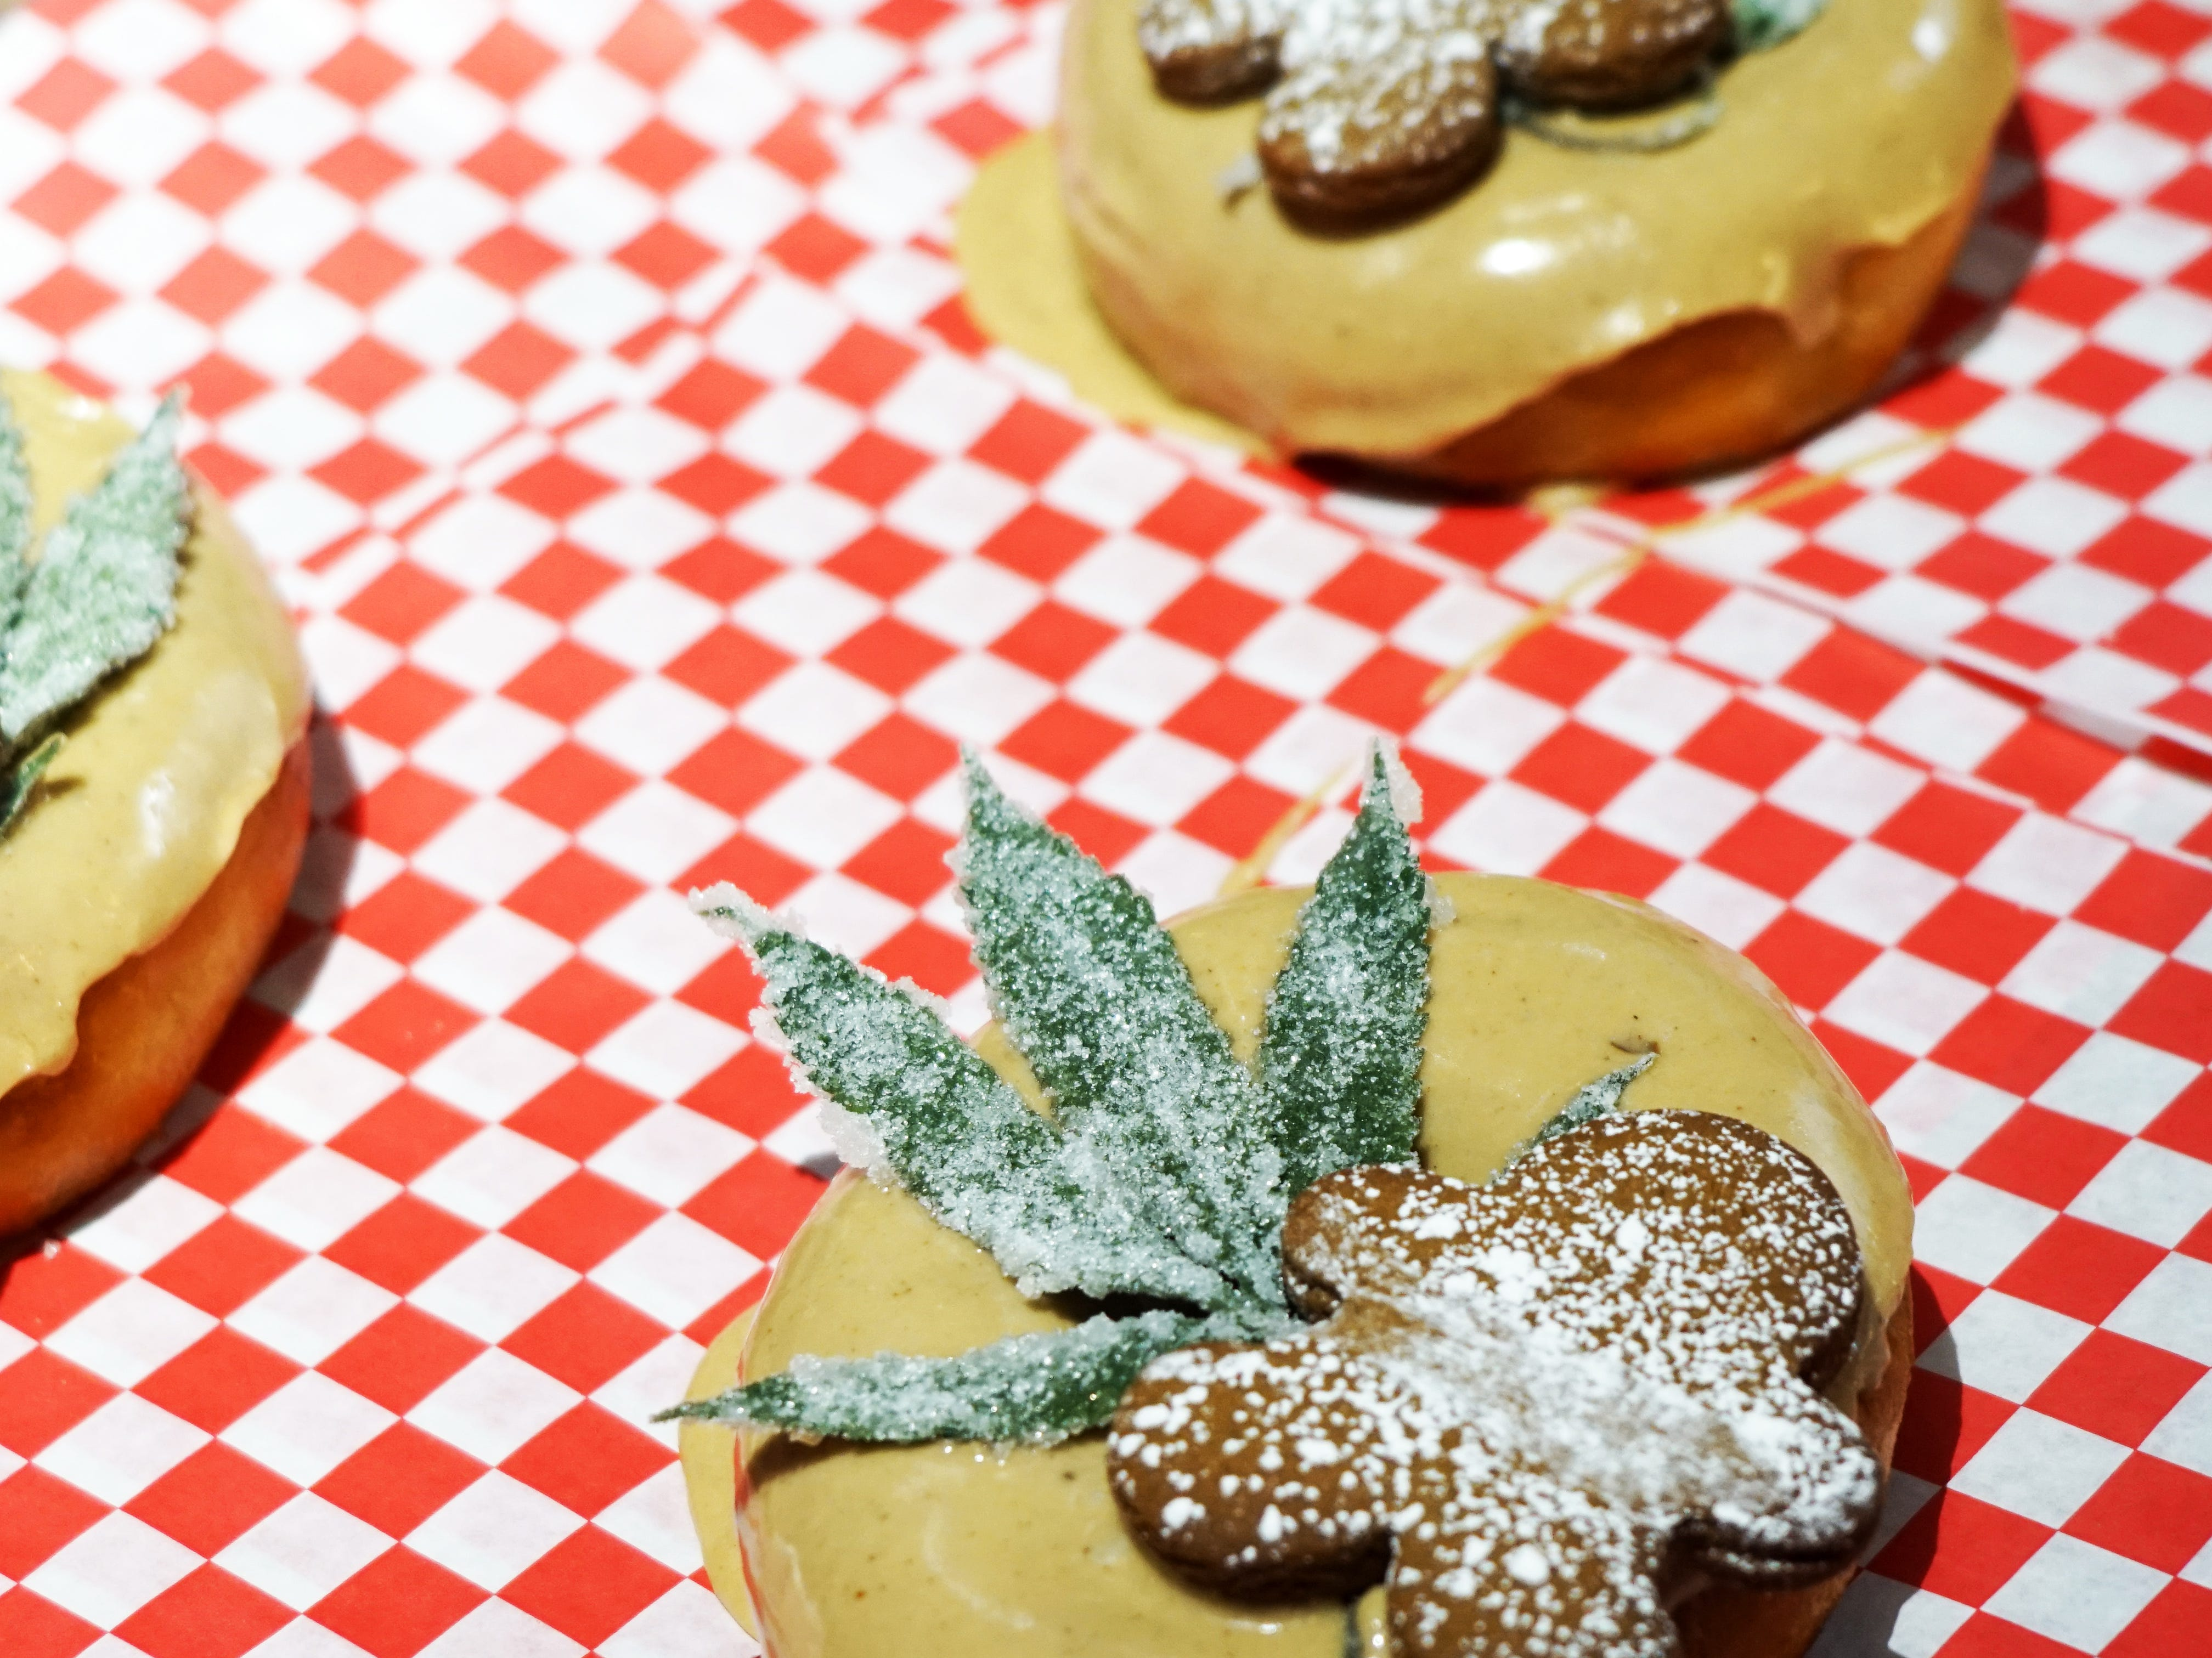 A donut topped with a CBD-infused glaze, a candied hemp leaf and a piece of gingerbread sits on a tray at Glazed & Confuzed donuts in the Stanley Marketplace in Aurora, Colorado.